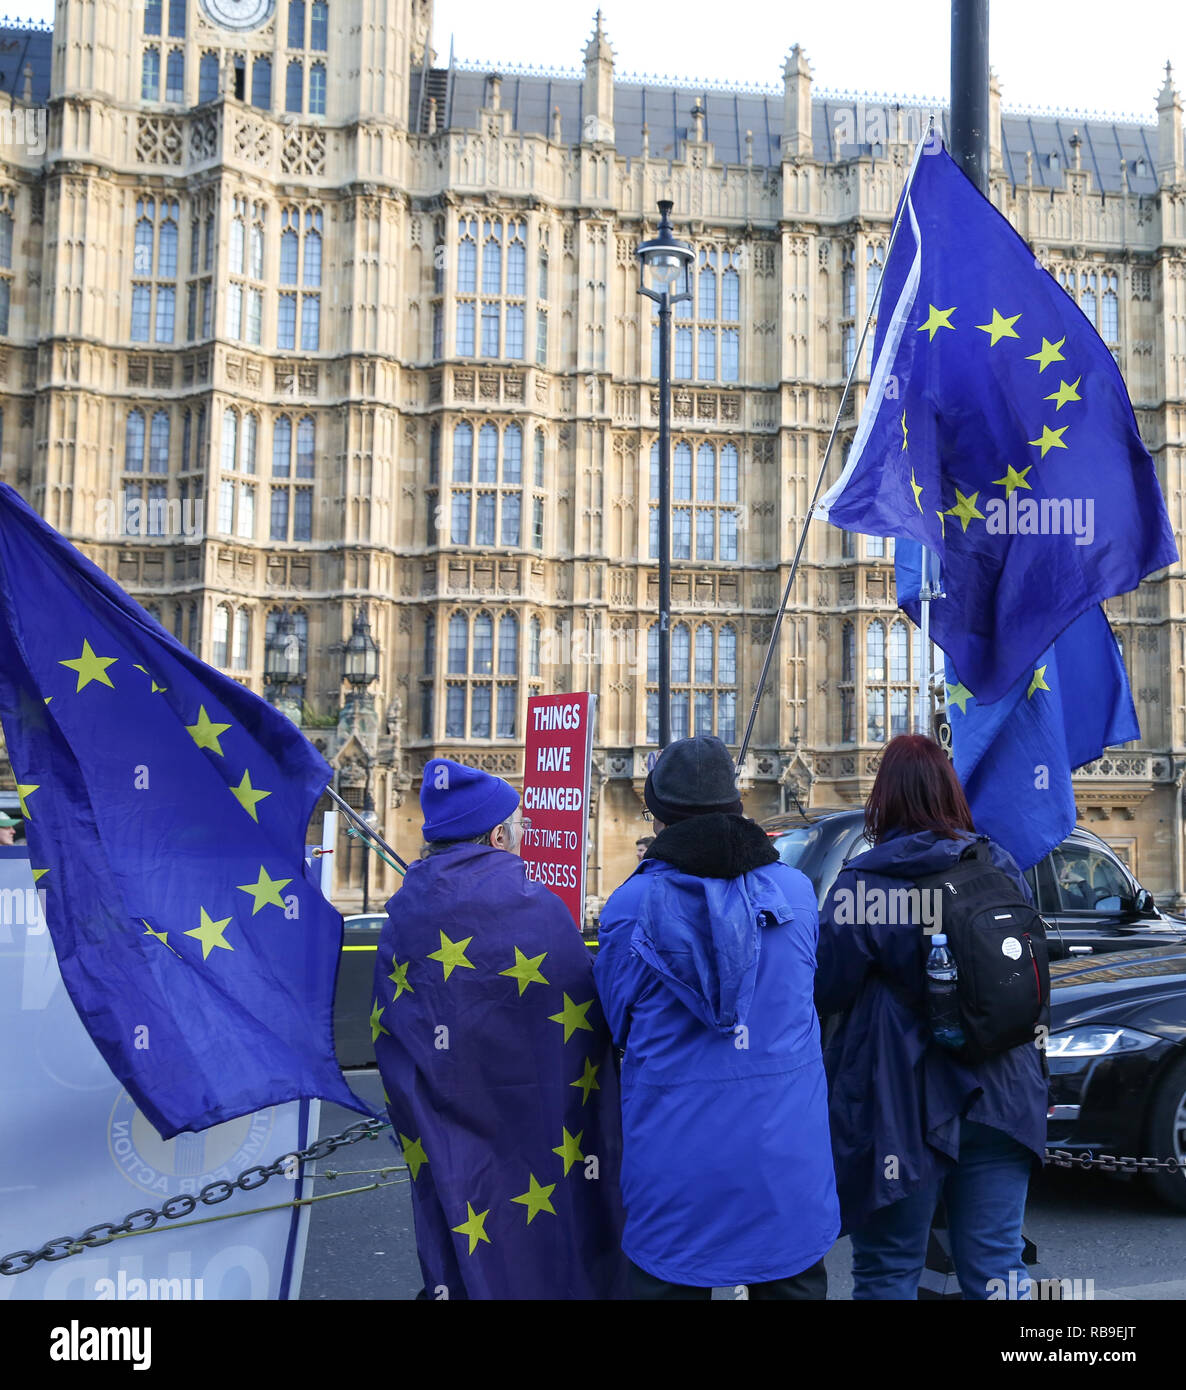 London, UK. 8th Jan, 2019. Anti-Brexit demonstrators seen waving European Union flags during the protest.Anti Brexit demonstrators gather outside the British Parliament a week before the MPs to vote on the finalized Brexit deal, MPs will vote on Theresa May's Brexit deal on Tuesday, 15 January. Credit: Dinendra Haria/SOPA Images/ZUMA Wire/Alamy Live News - Stock Image